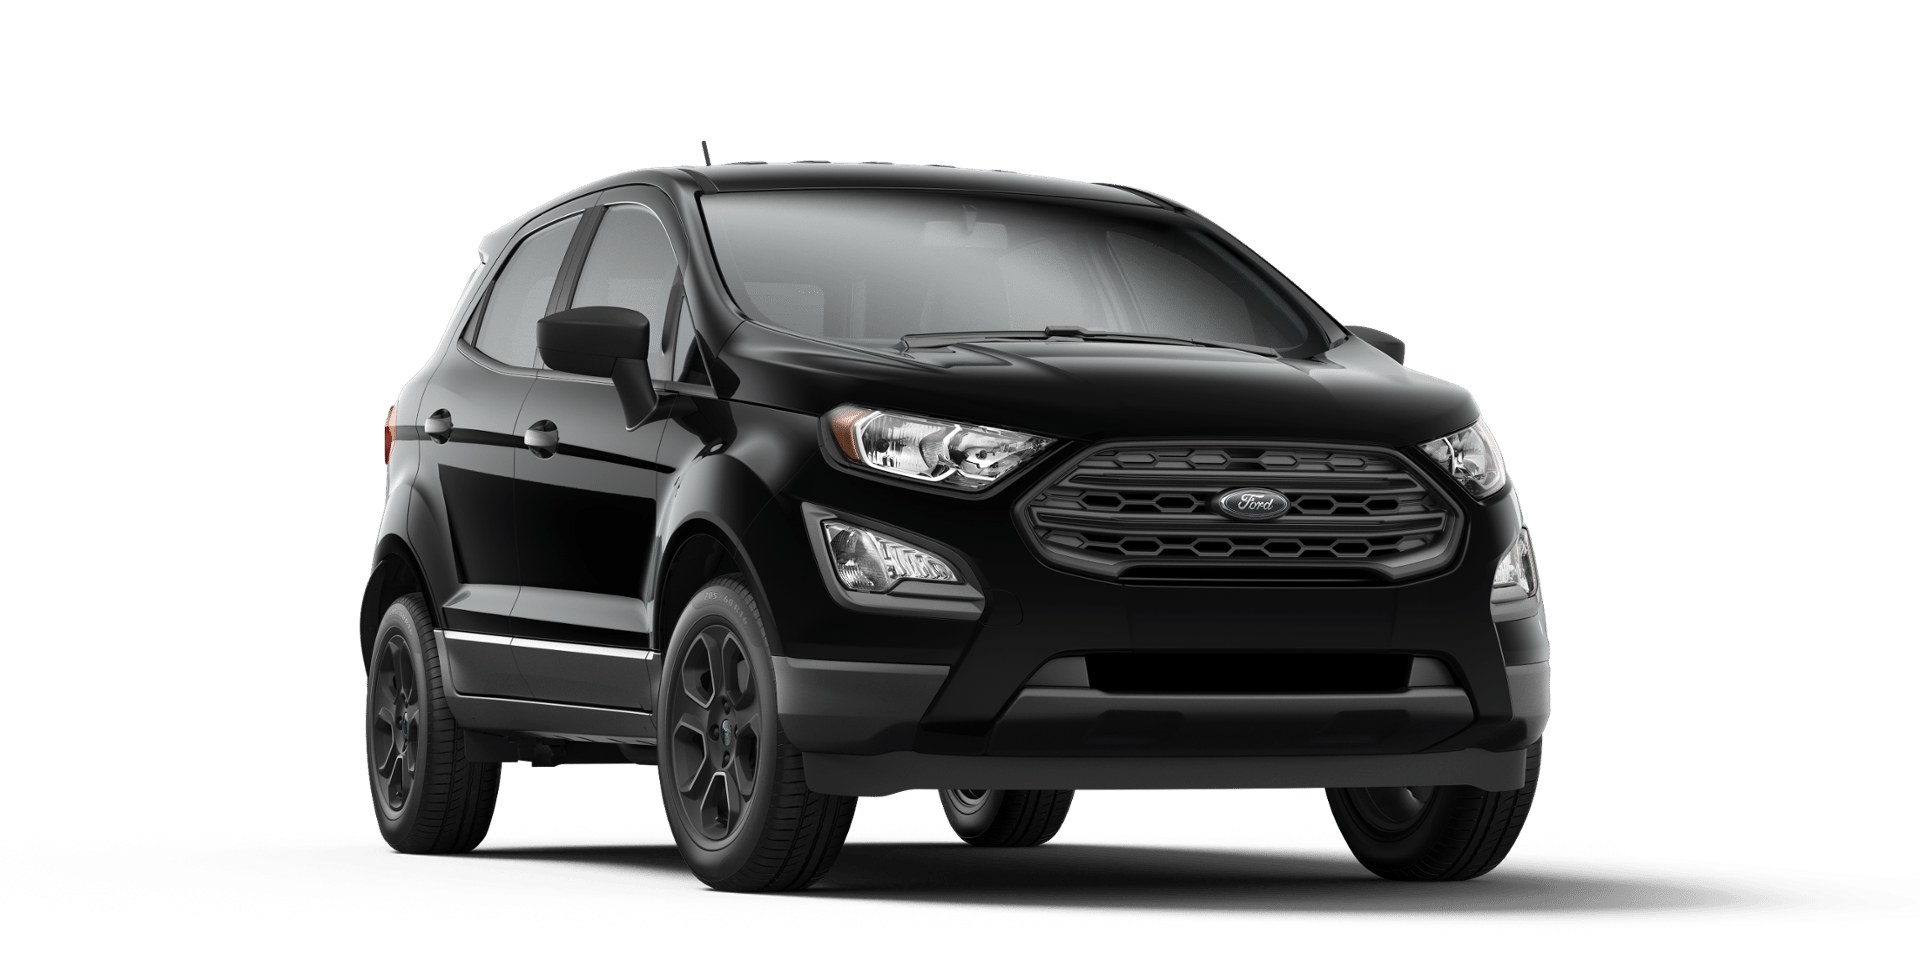 Ford Ecosport Shadow Black Front View